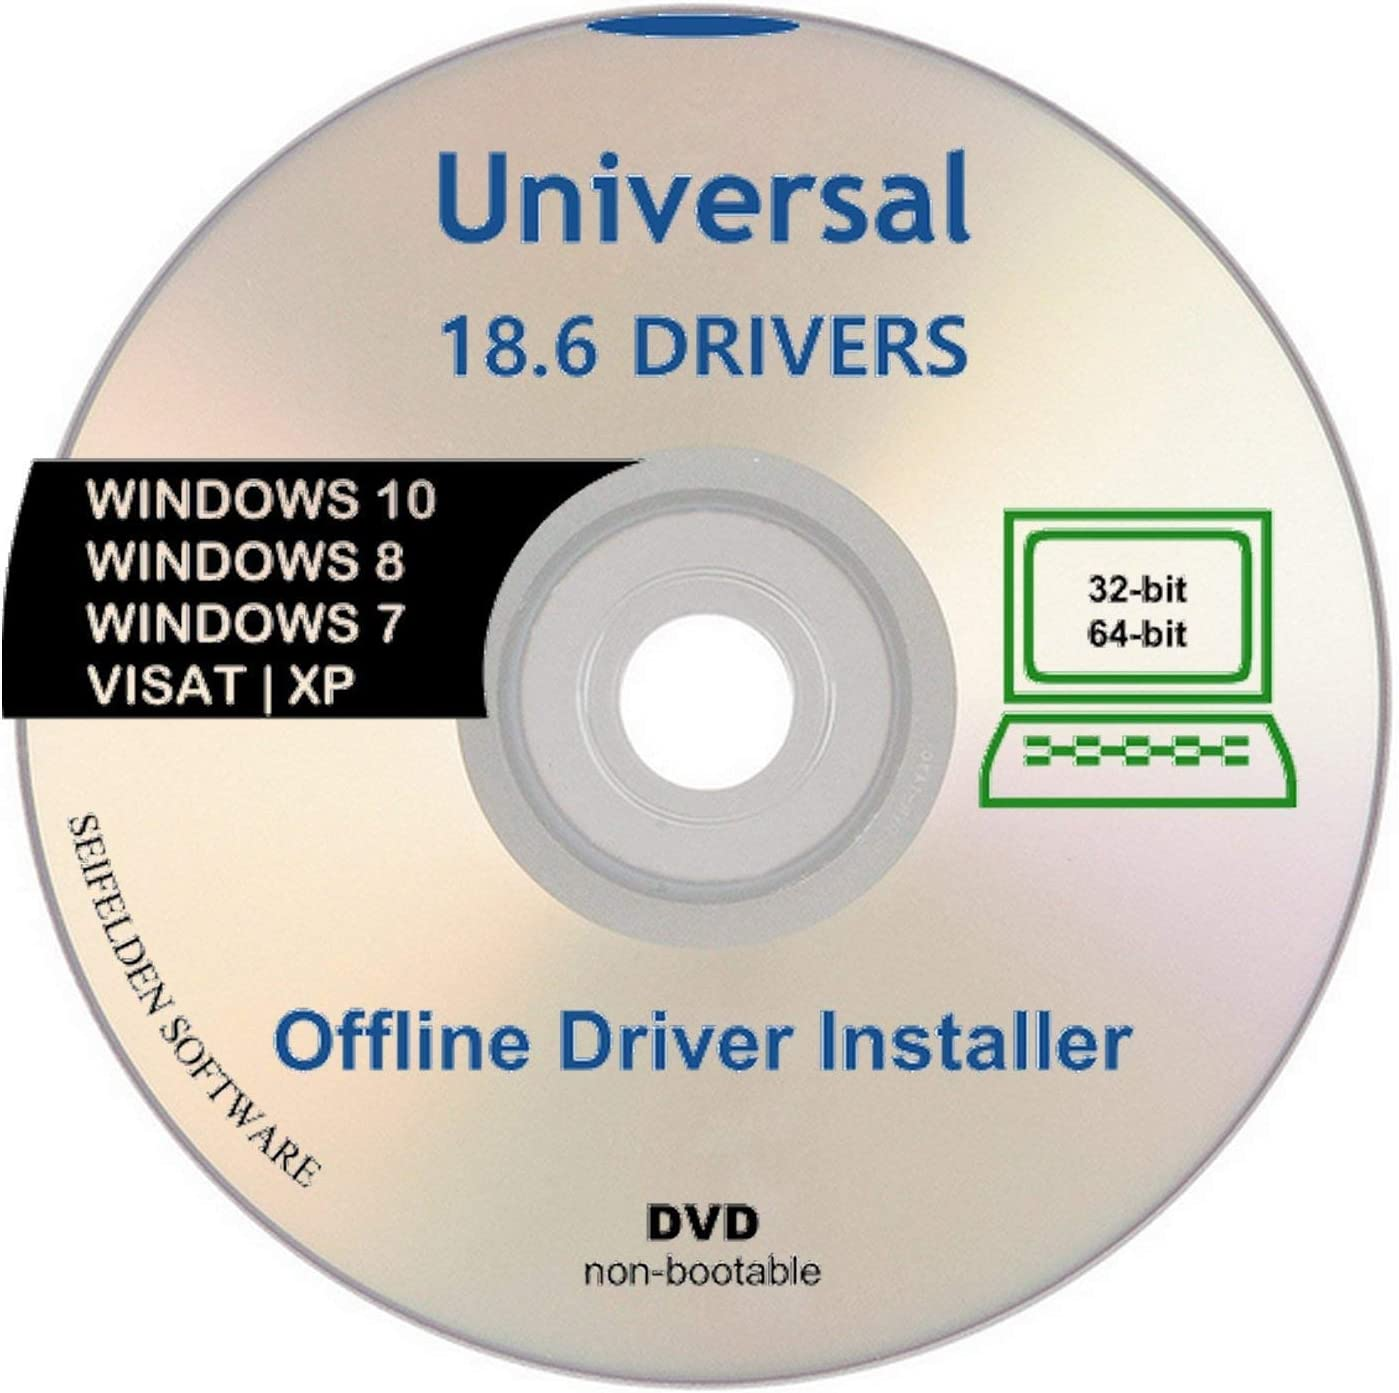 Universal Offline Driver Install Automatic Complete Device DVD Windows 10 7  XP 8 Vista Supports Sony Acer Asus Lenovo Compaq IBM eMachines HP Dell  Toshiba Gateway Safety Restore Point : Amazon.co.uk: Software